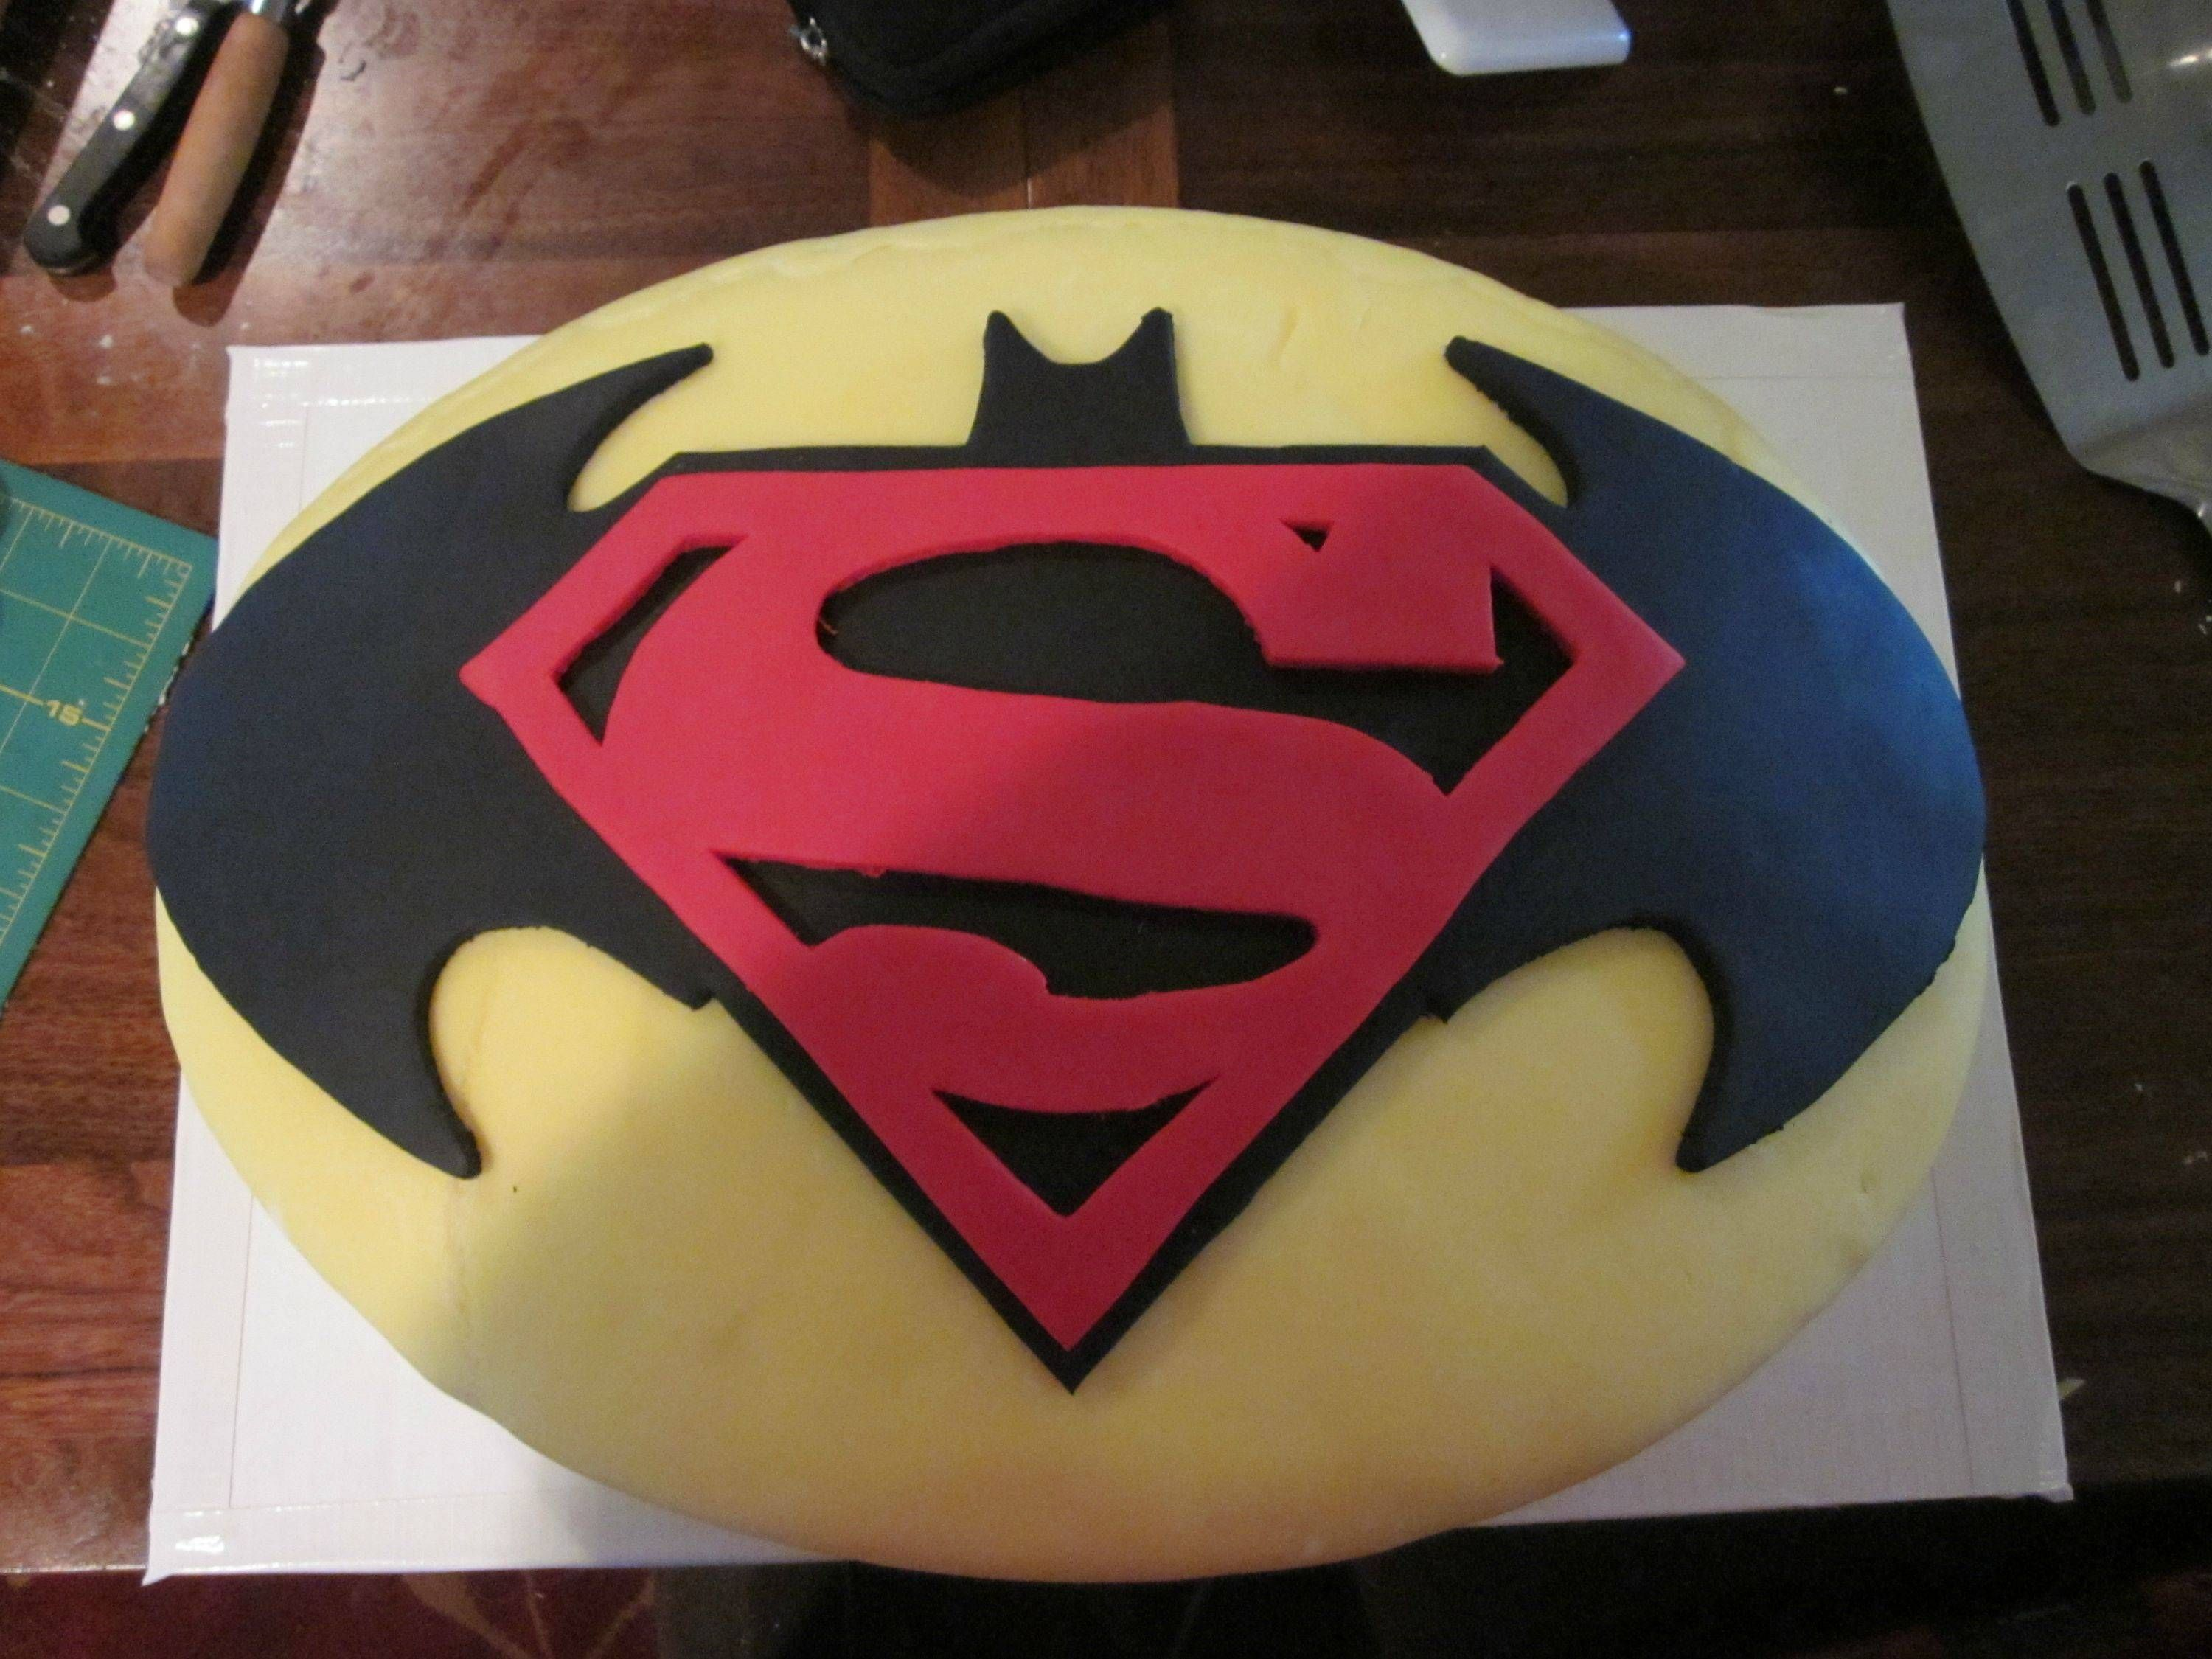 Some Cool Batman Vs Superman Cakes ideas for the People who are huge